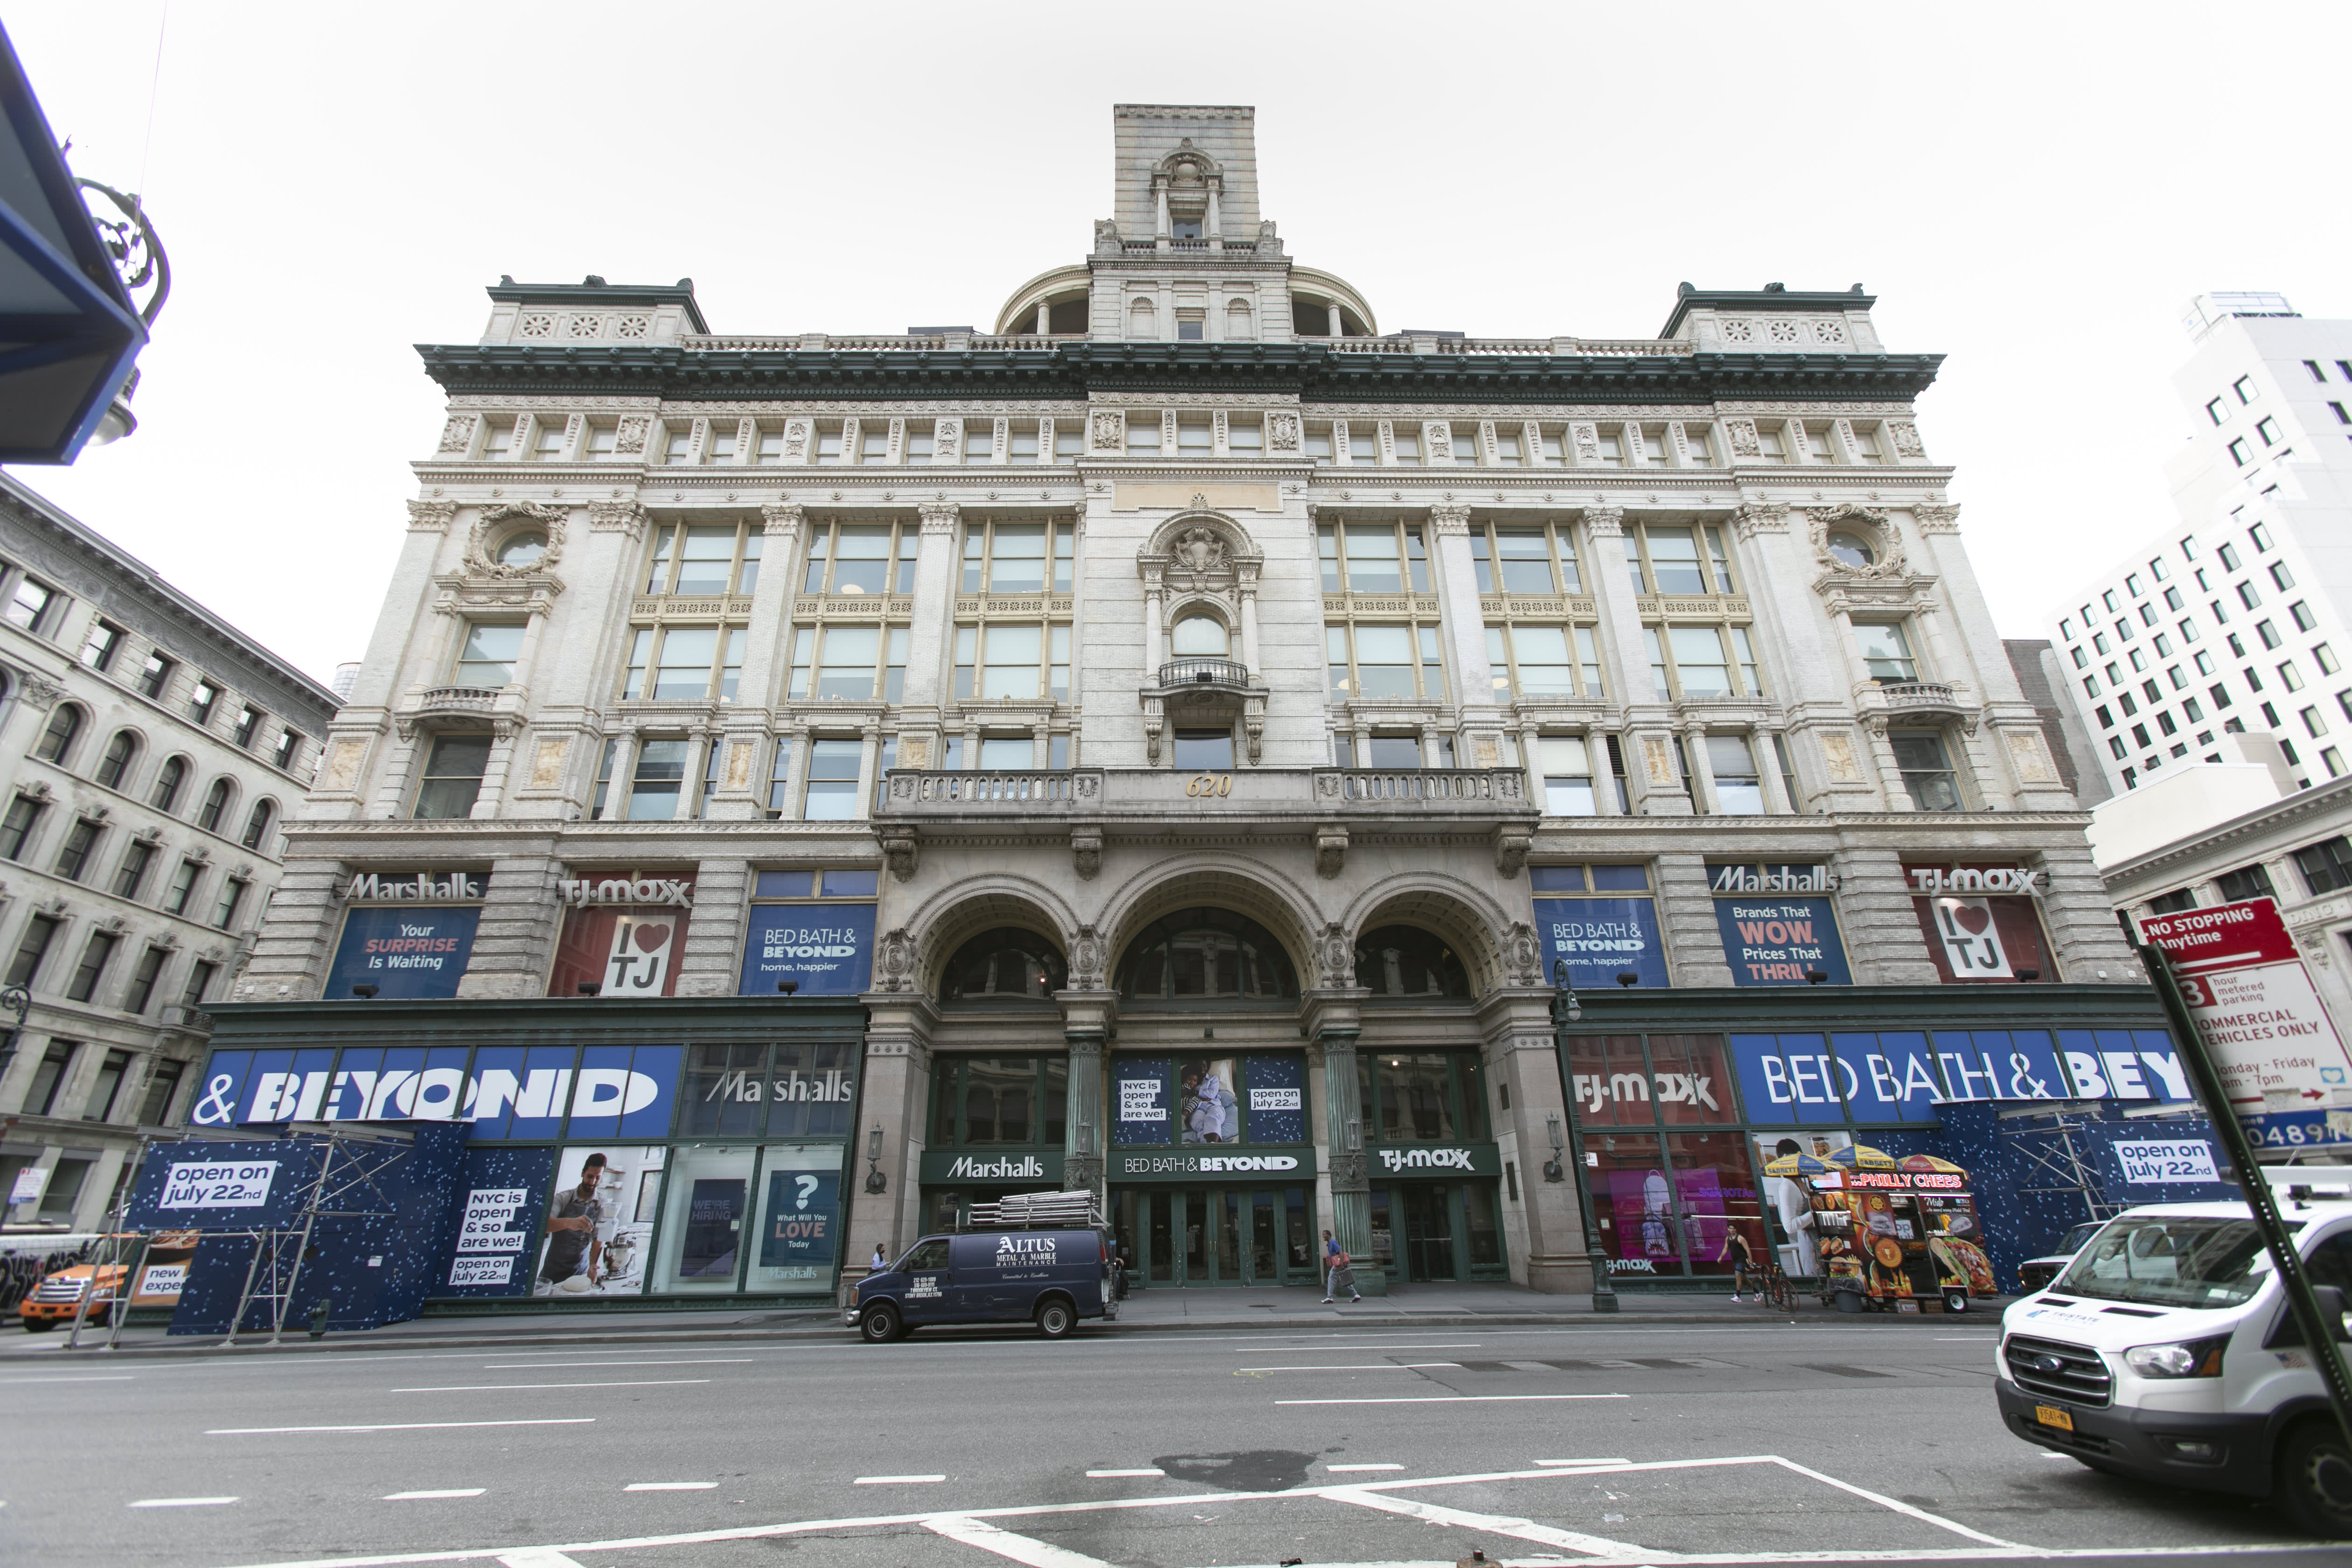 On Thursday morning, Bed Bath & Beyond will officially swing open the doors of its newly remodeled flagship location in New York City.